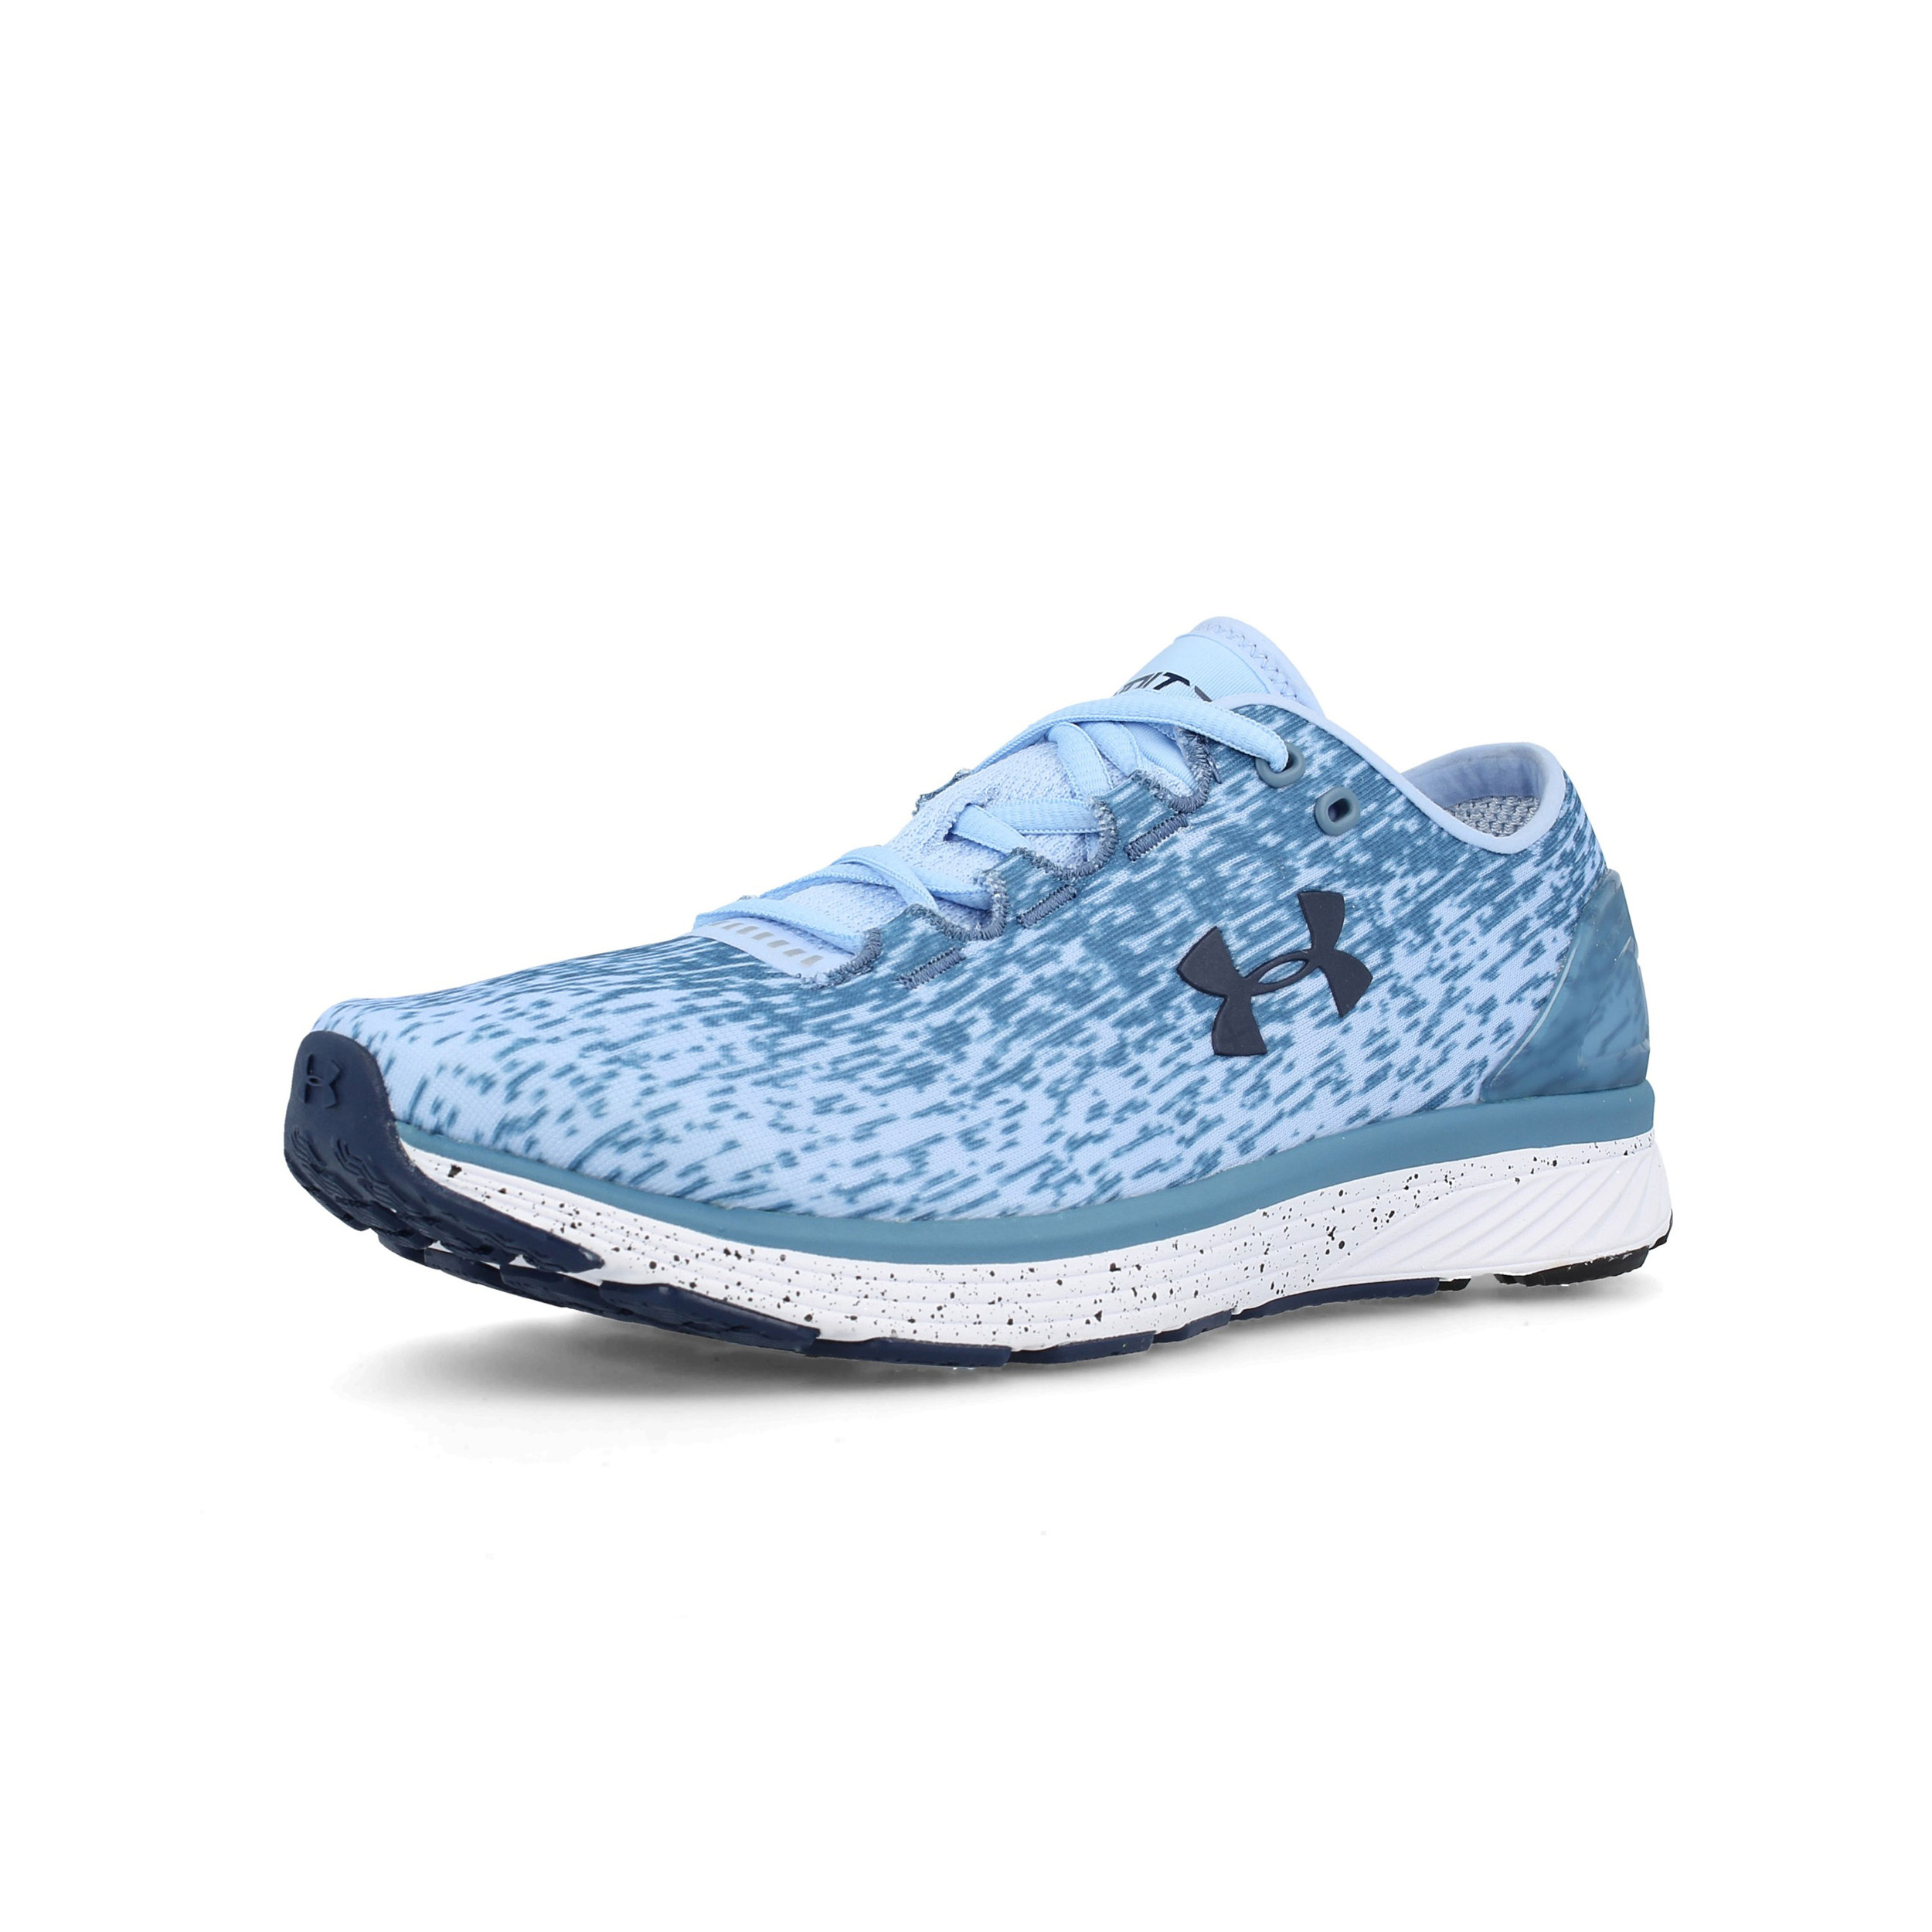 Under Armour Damenschuhe Charged Schuhes Bandit 3 Ombre Running Schuhes Charged Trainers Sneakers Blau 74ca54